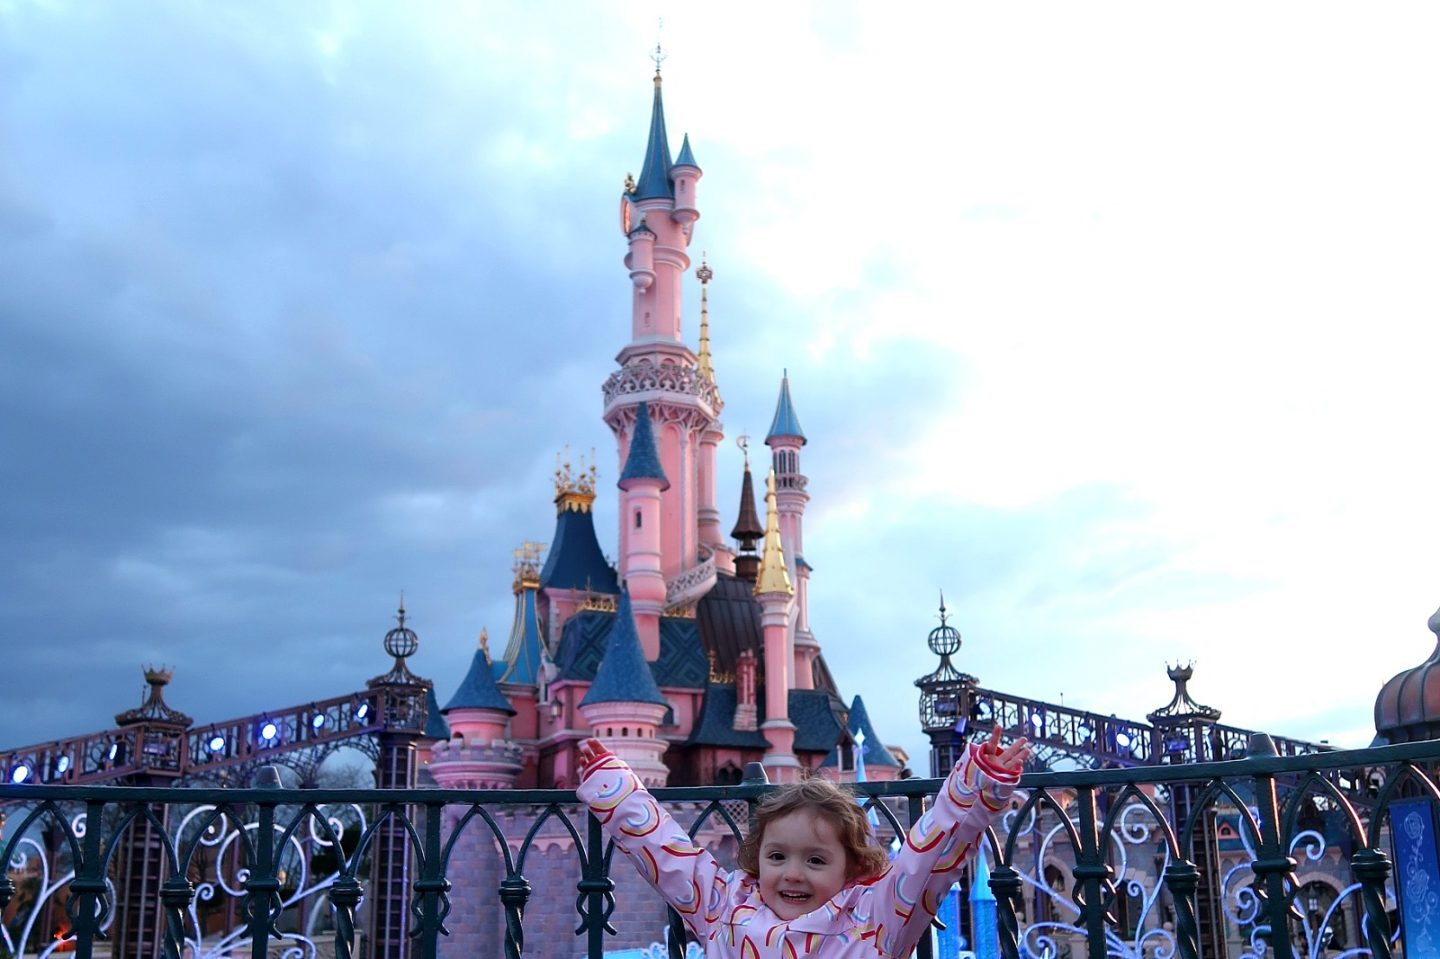 Disneyland Paris trip - tips for visiting and the castle